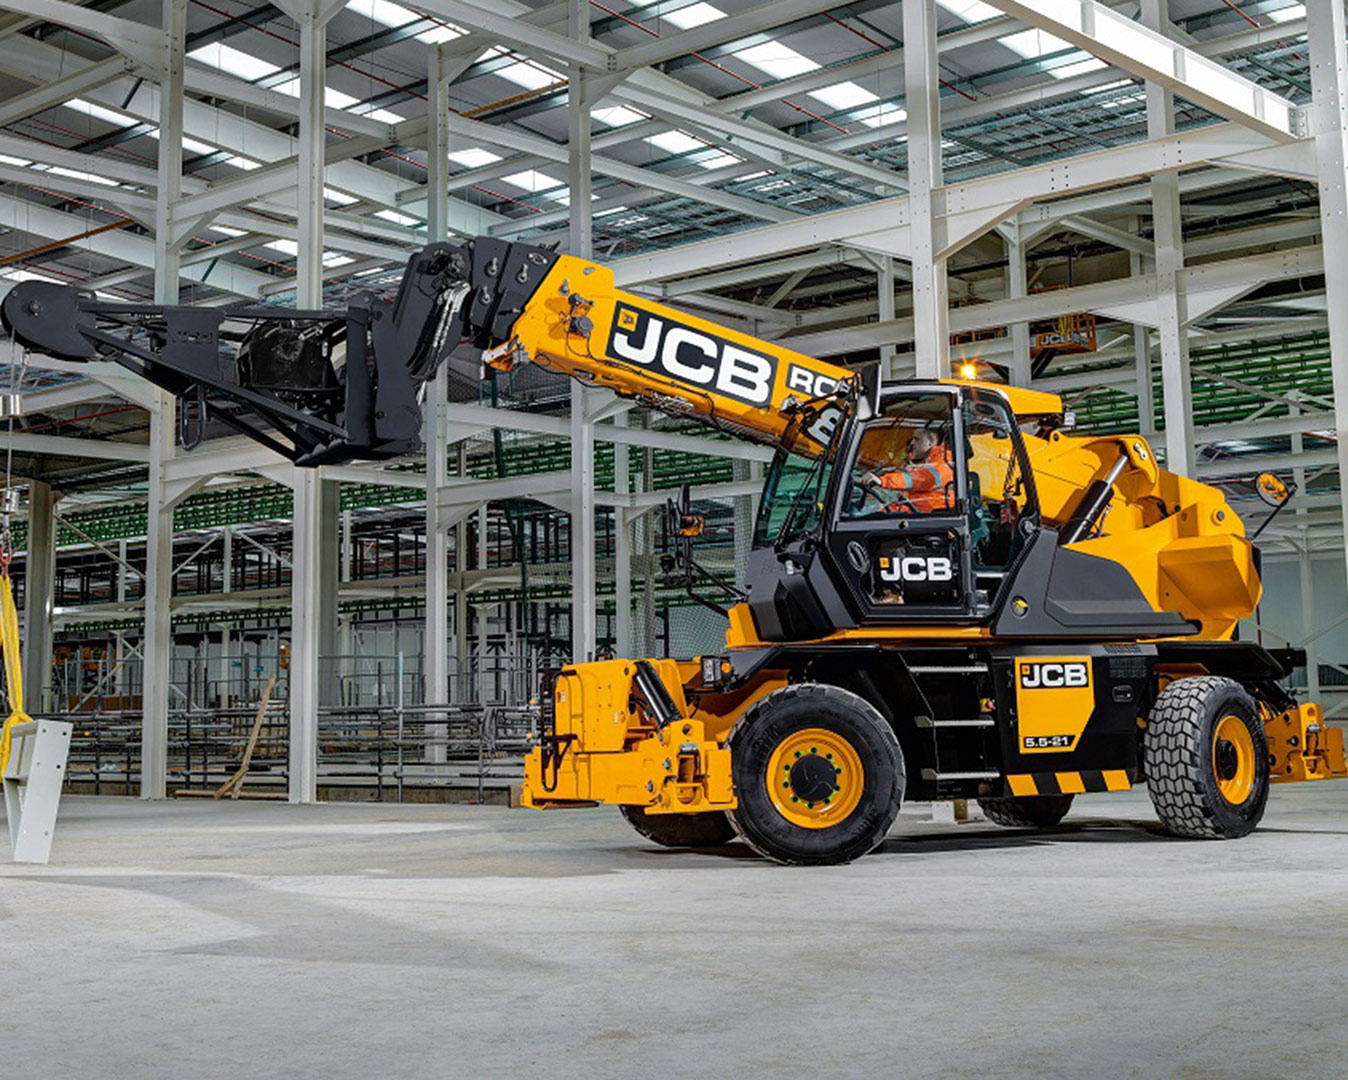 telescopic-rotatif-jcb-2021